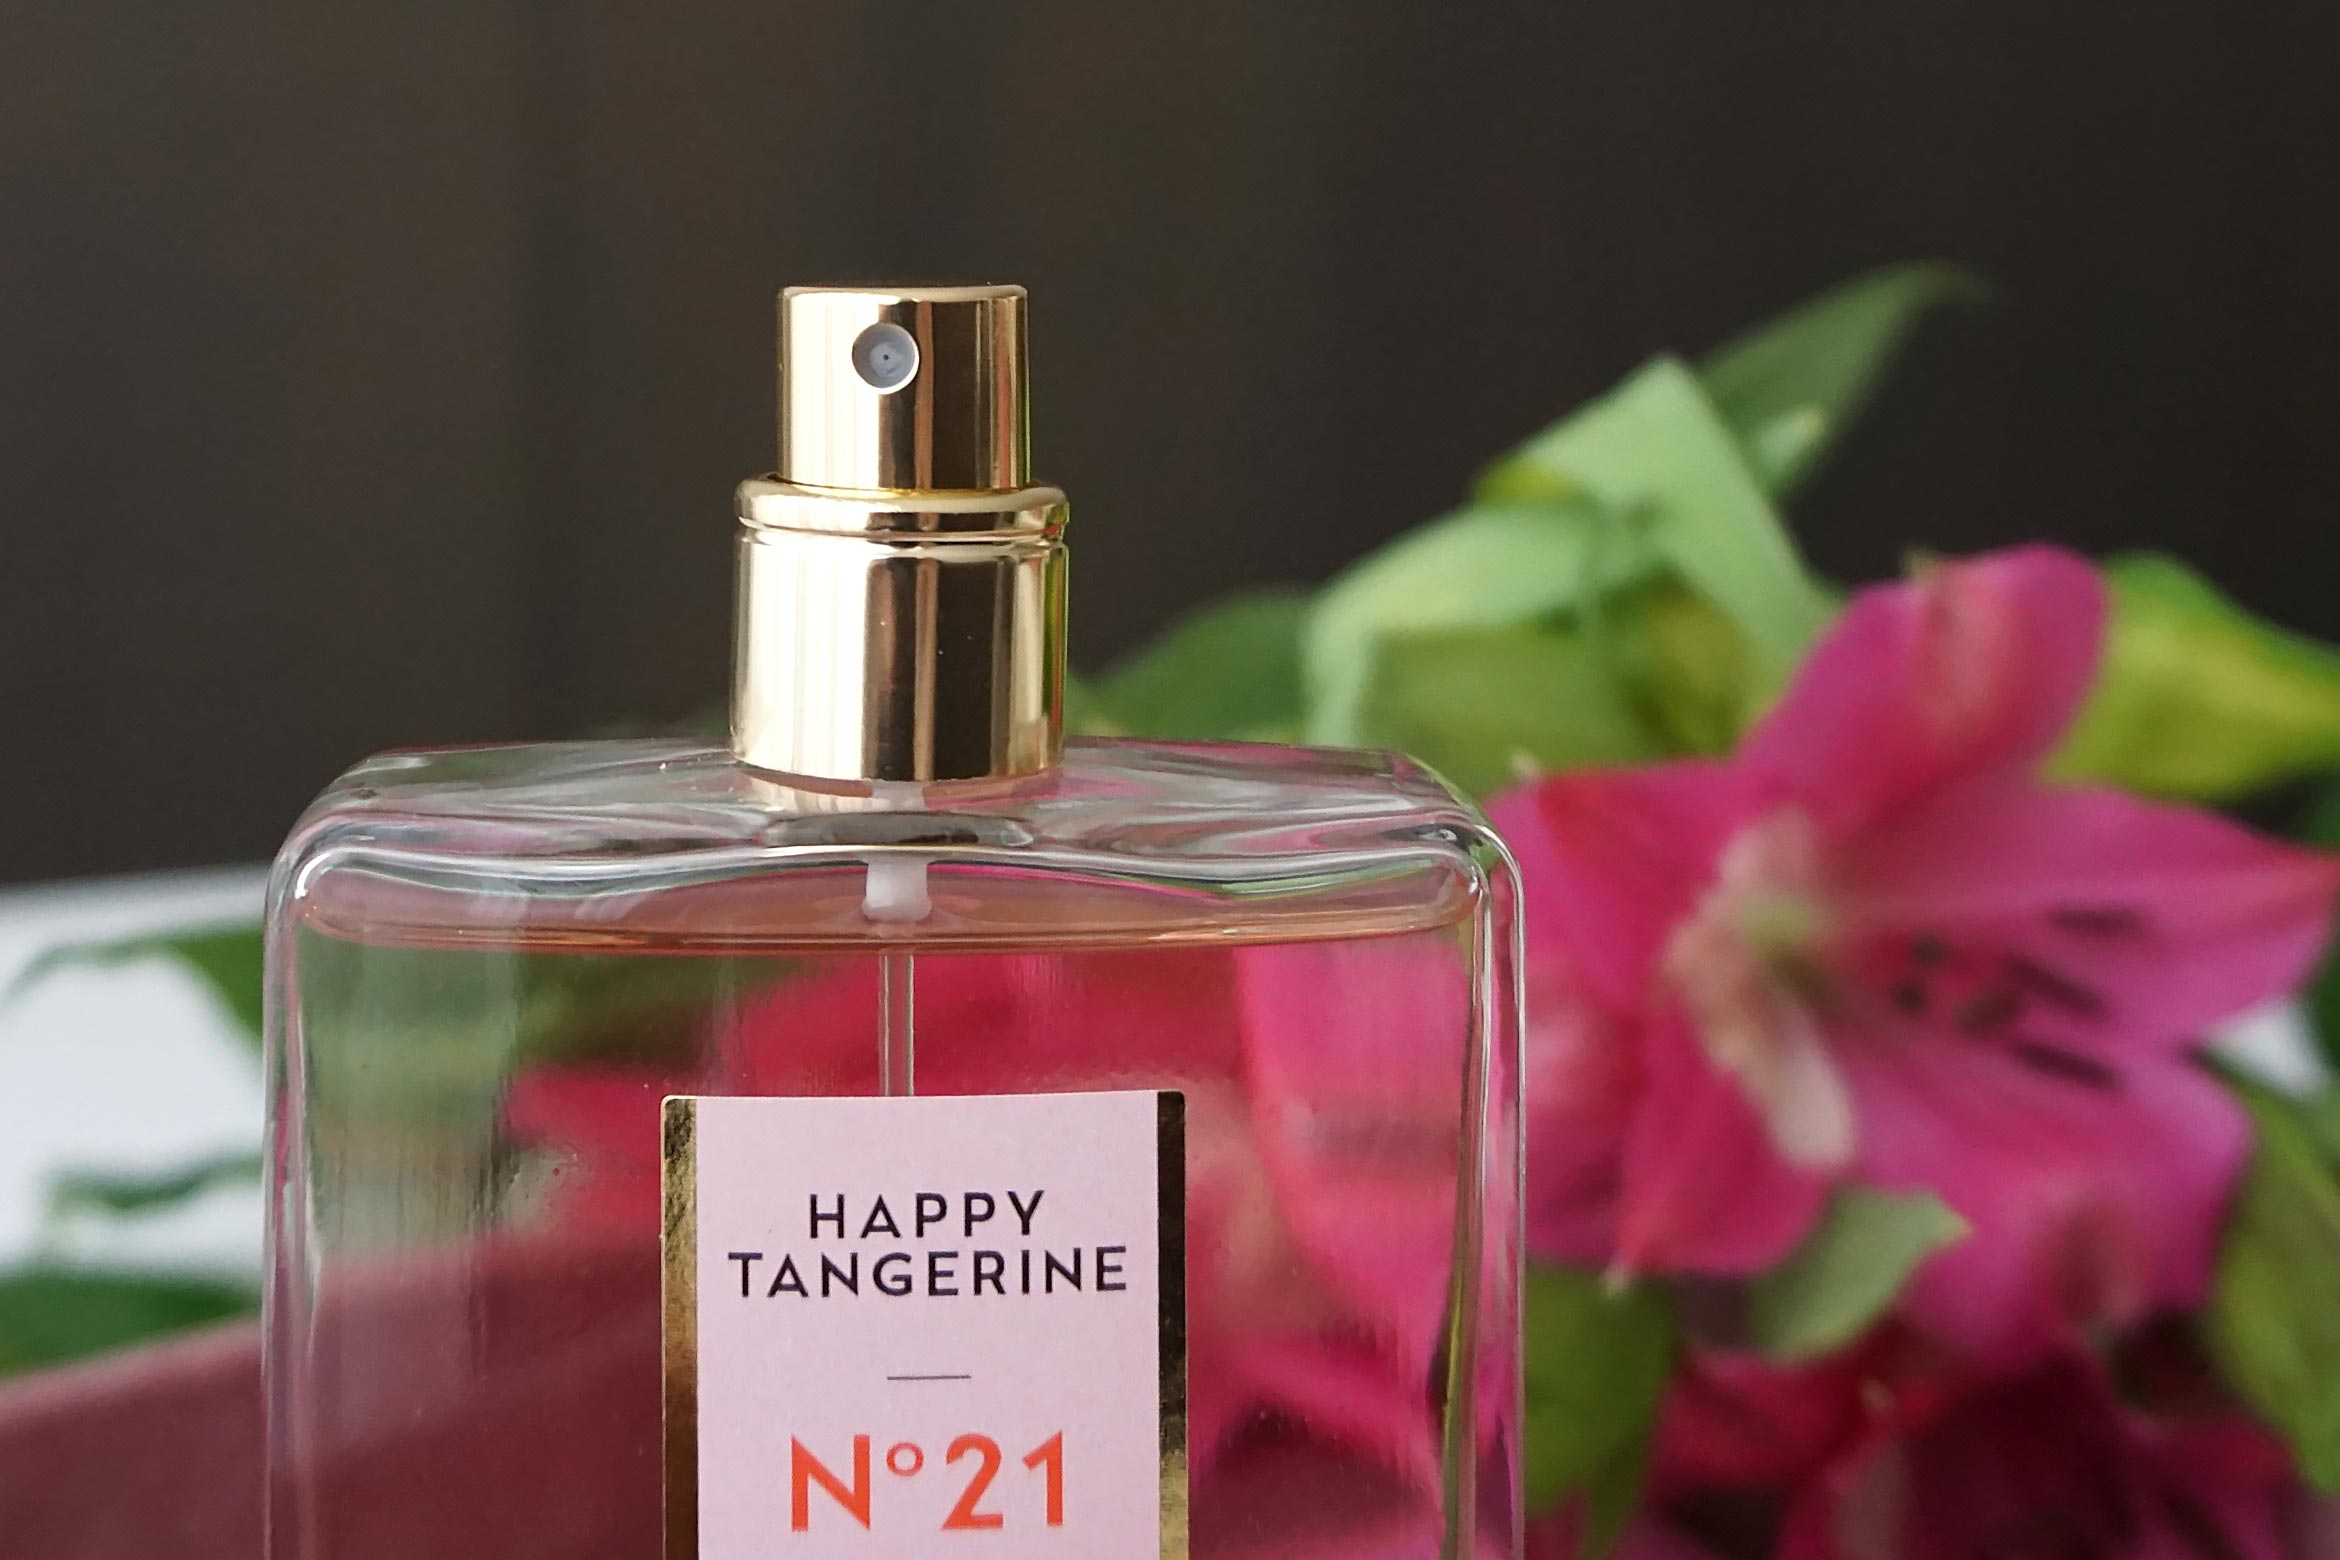 The-Master-Perfumer-N-21-Happy-Tangerine-review-1